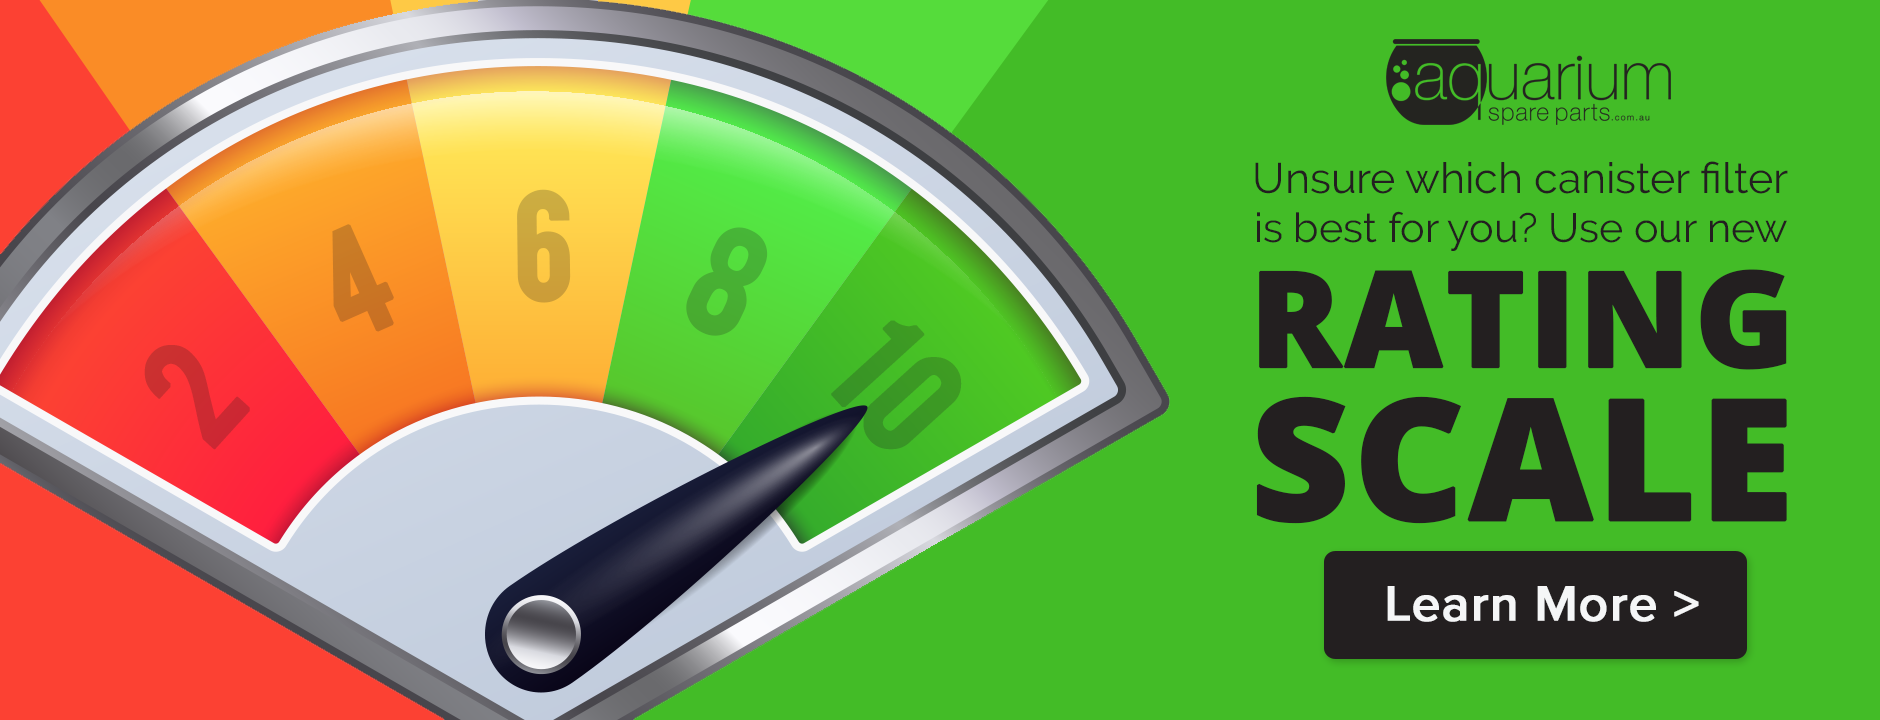 rating-scale-banner.png